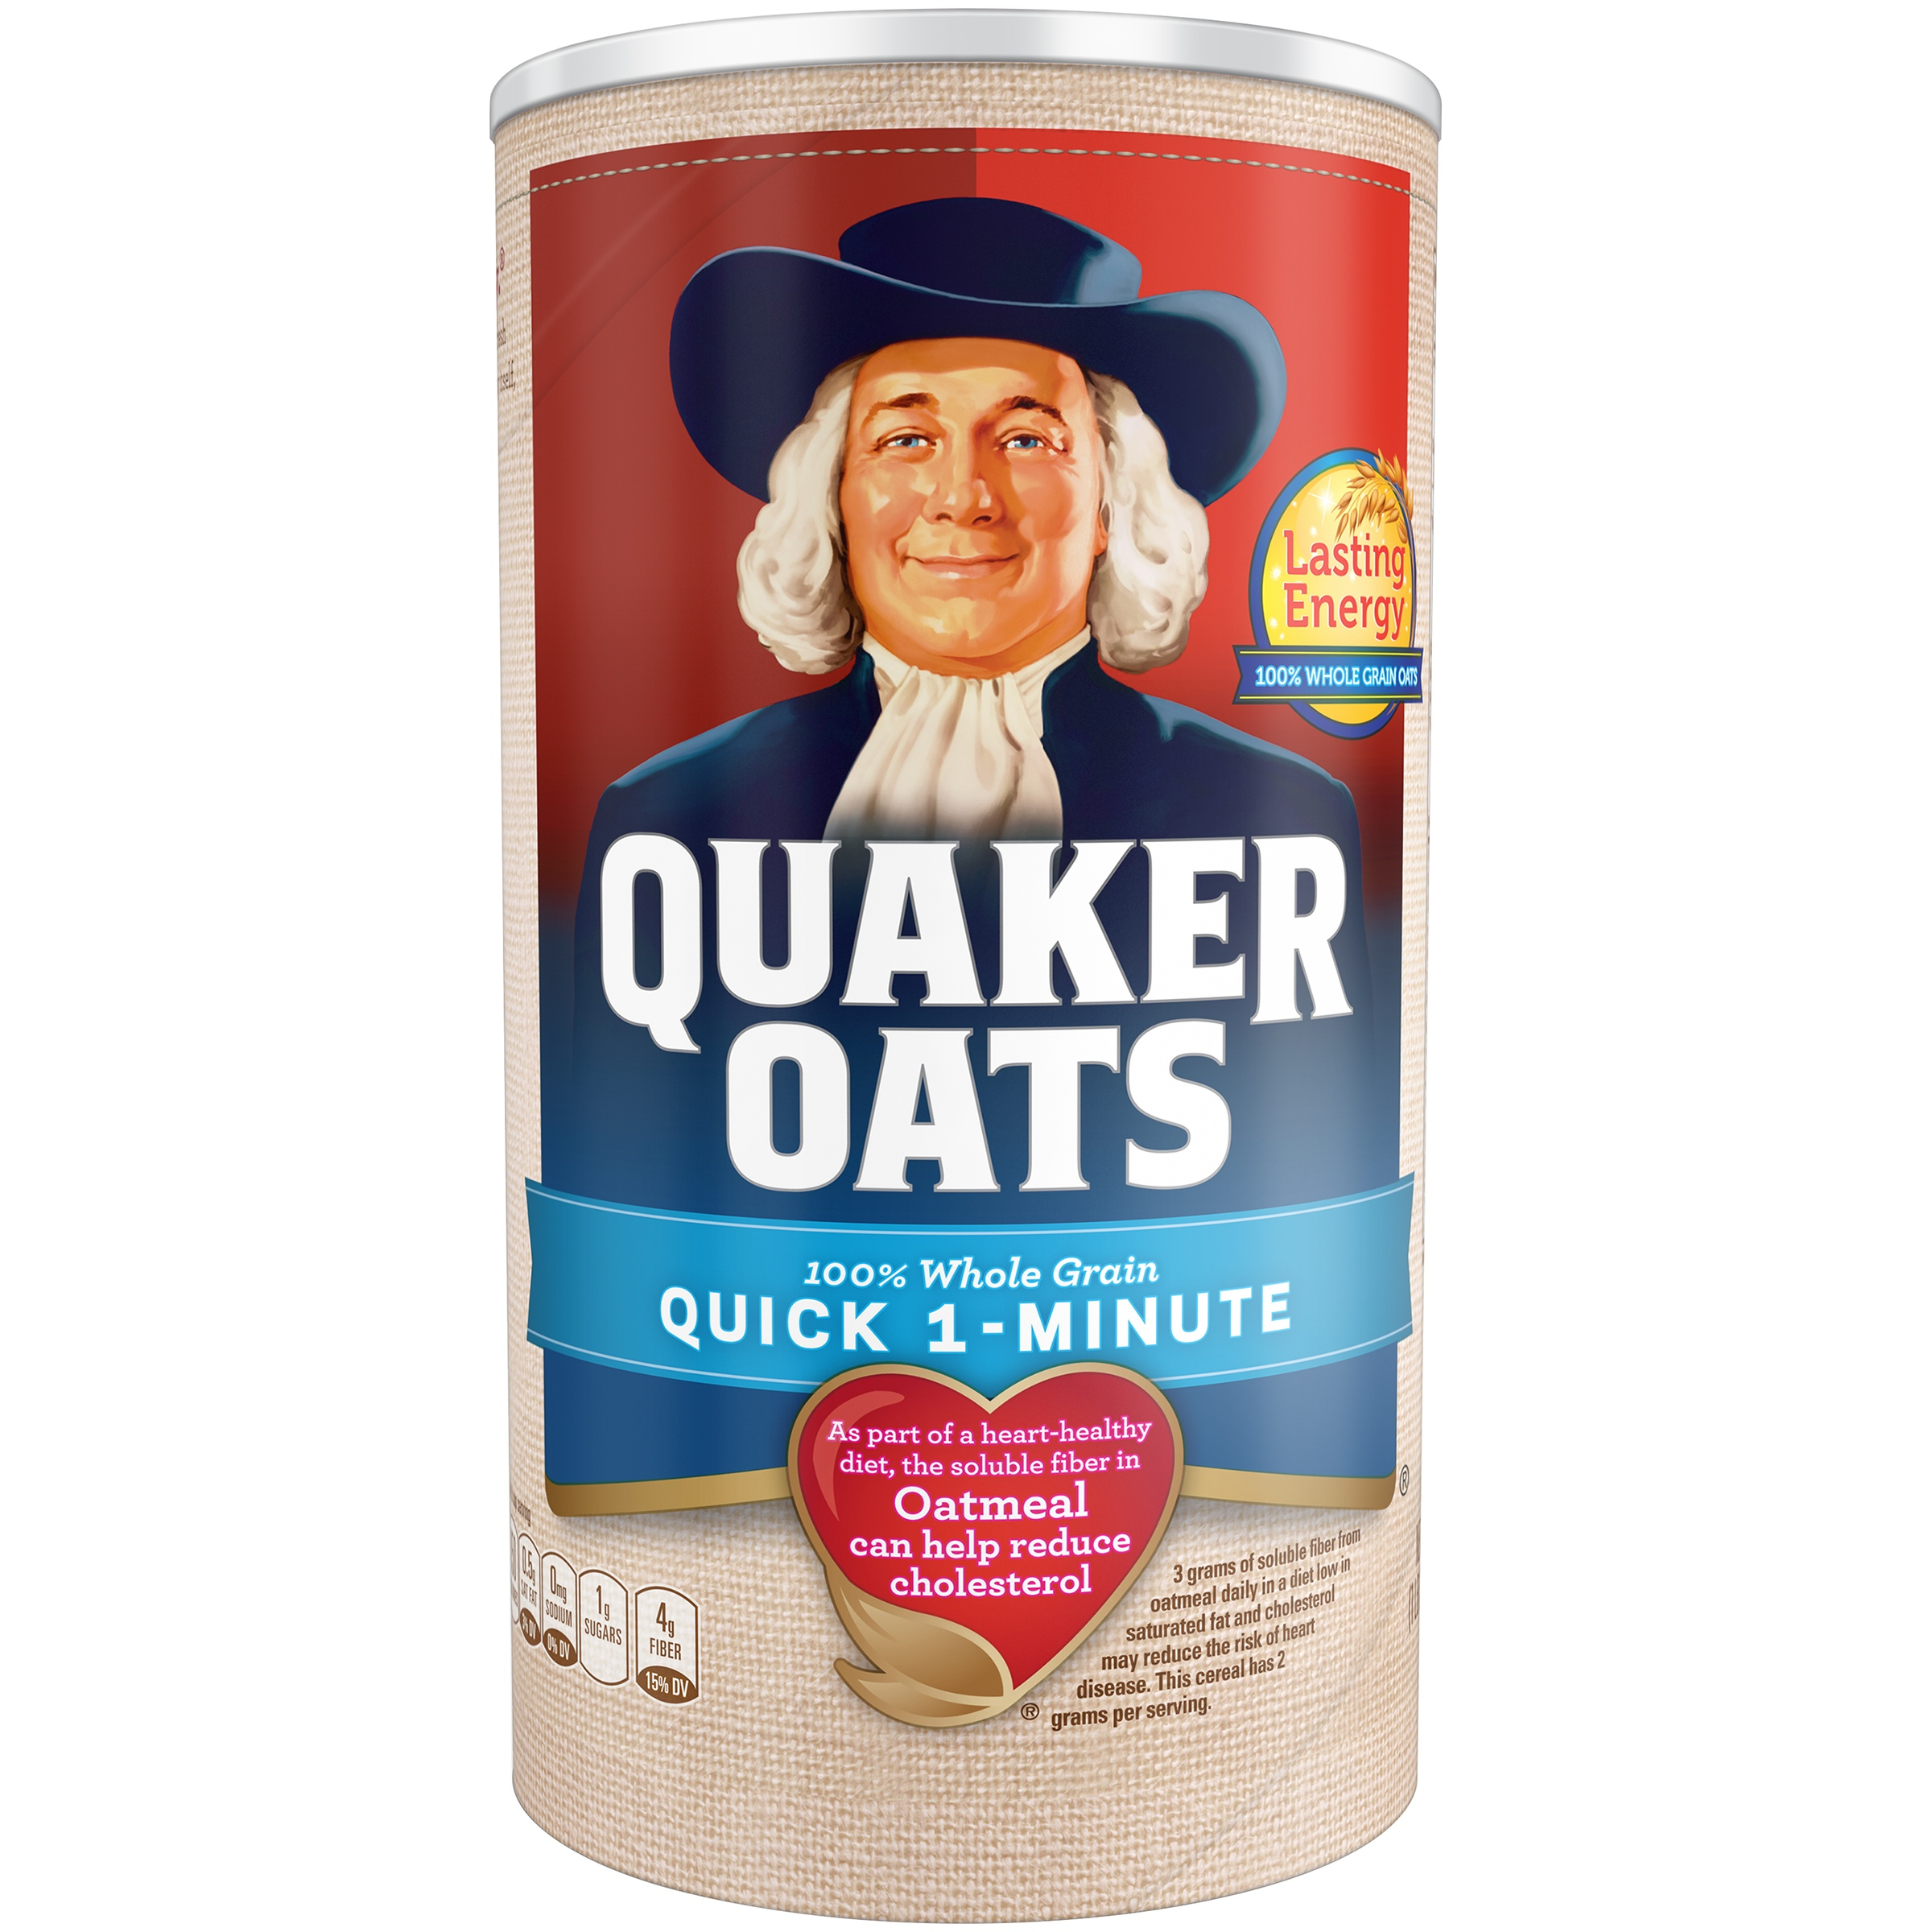 (4 Pack) Quaker Oats, Quick 1 - Minute Oatmeal, 18 oz Canister